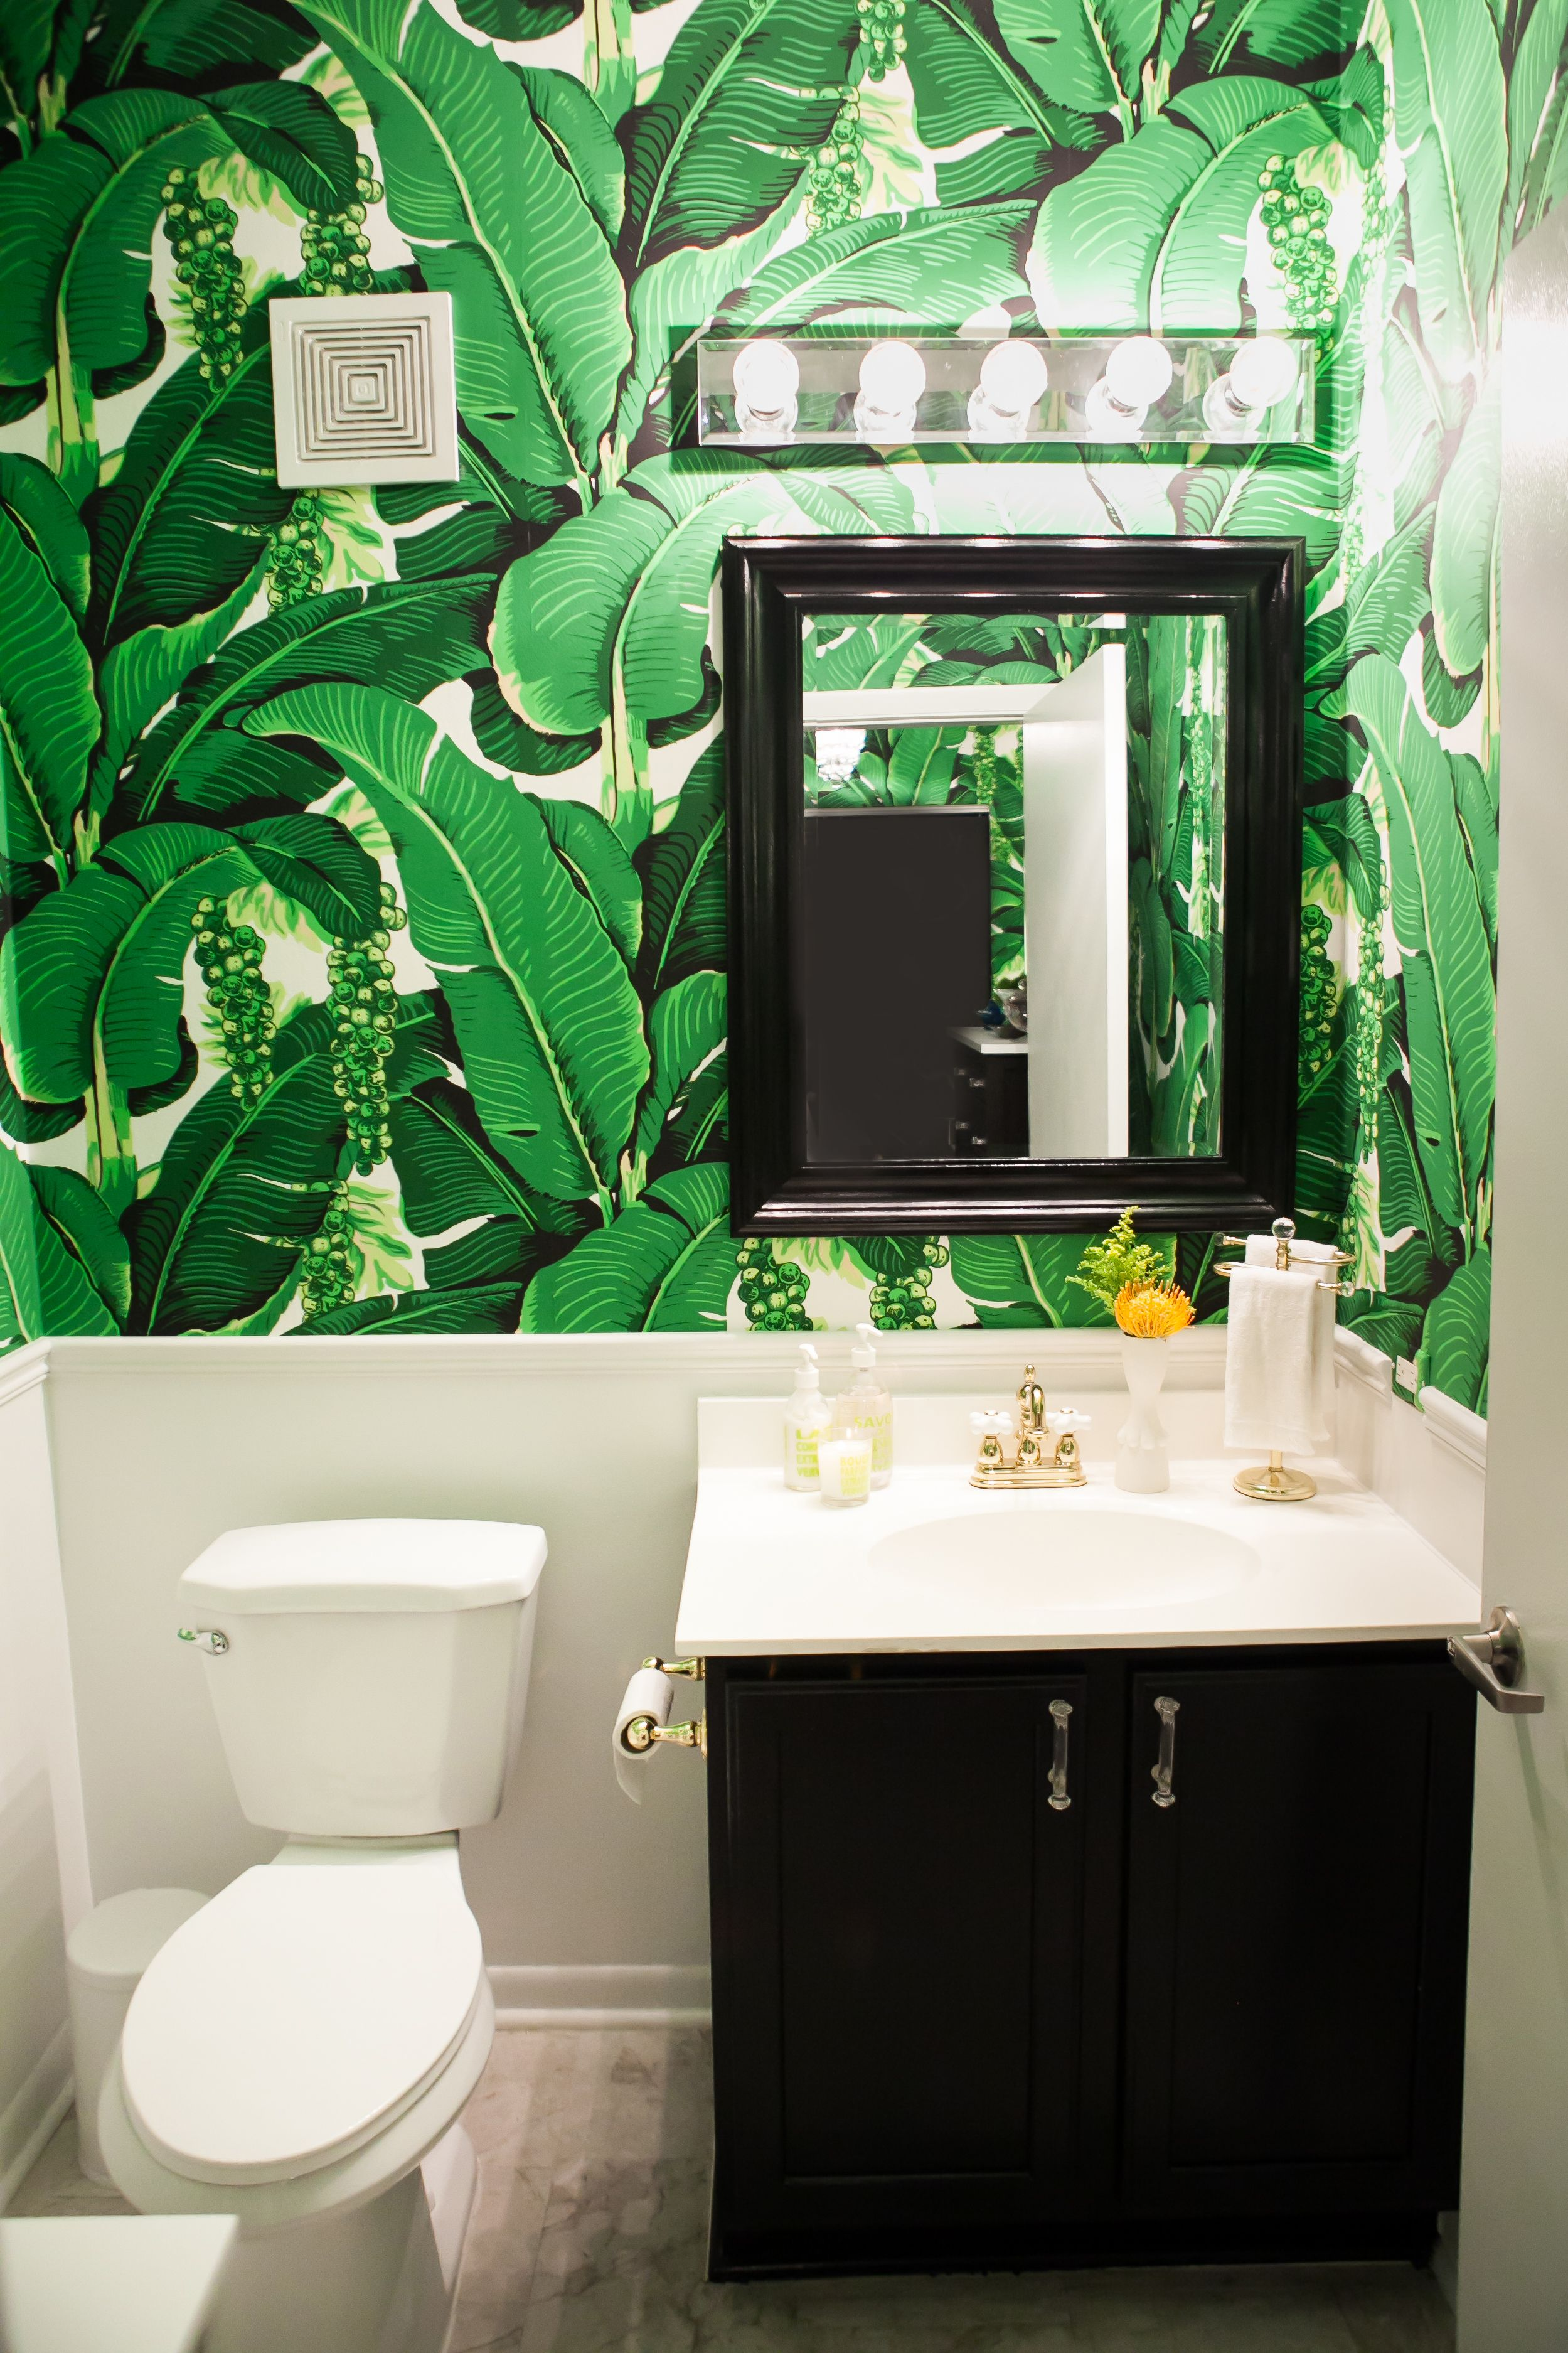 Gold and brass fixtures and faucets promising or passe apartment - Amelia Canham Eaton S Chicago Apartment Bathroom Banana Leaf Wallpaper Photography